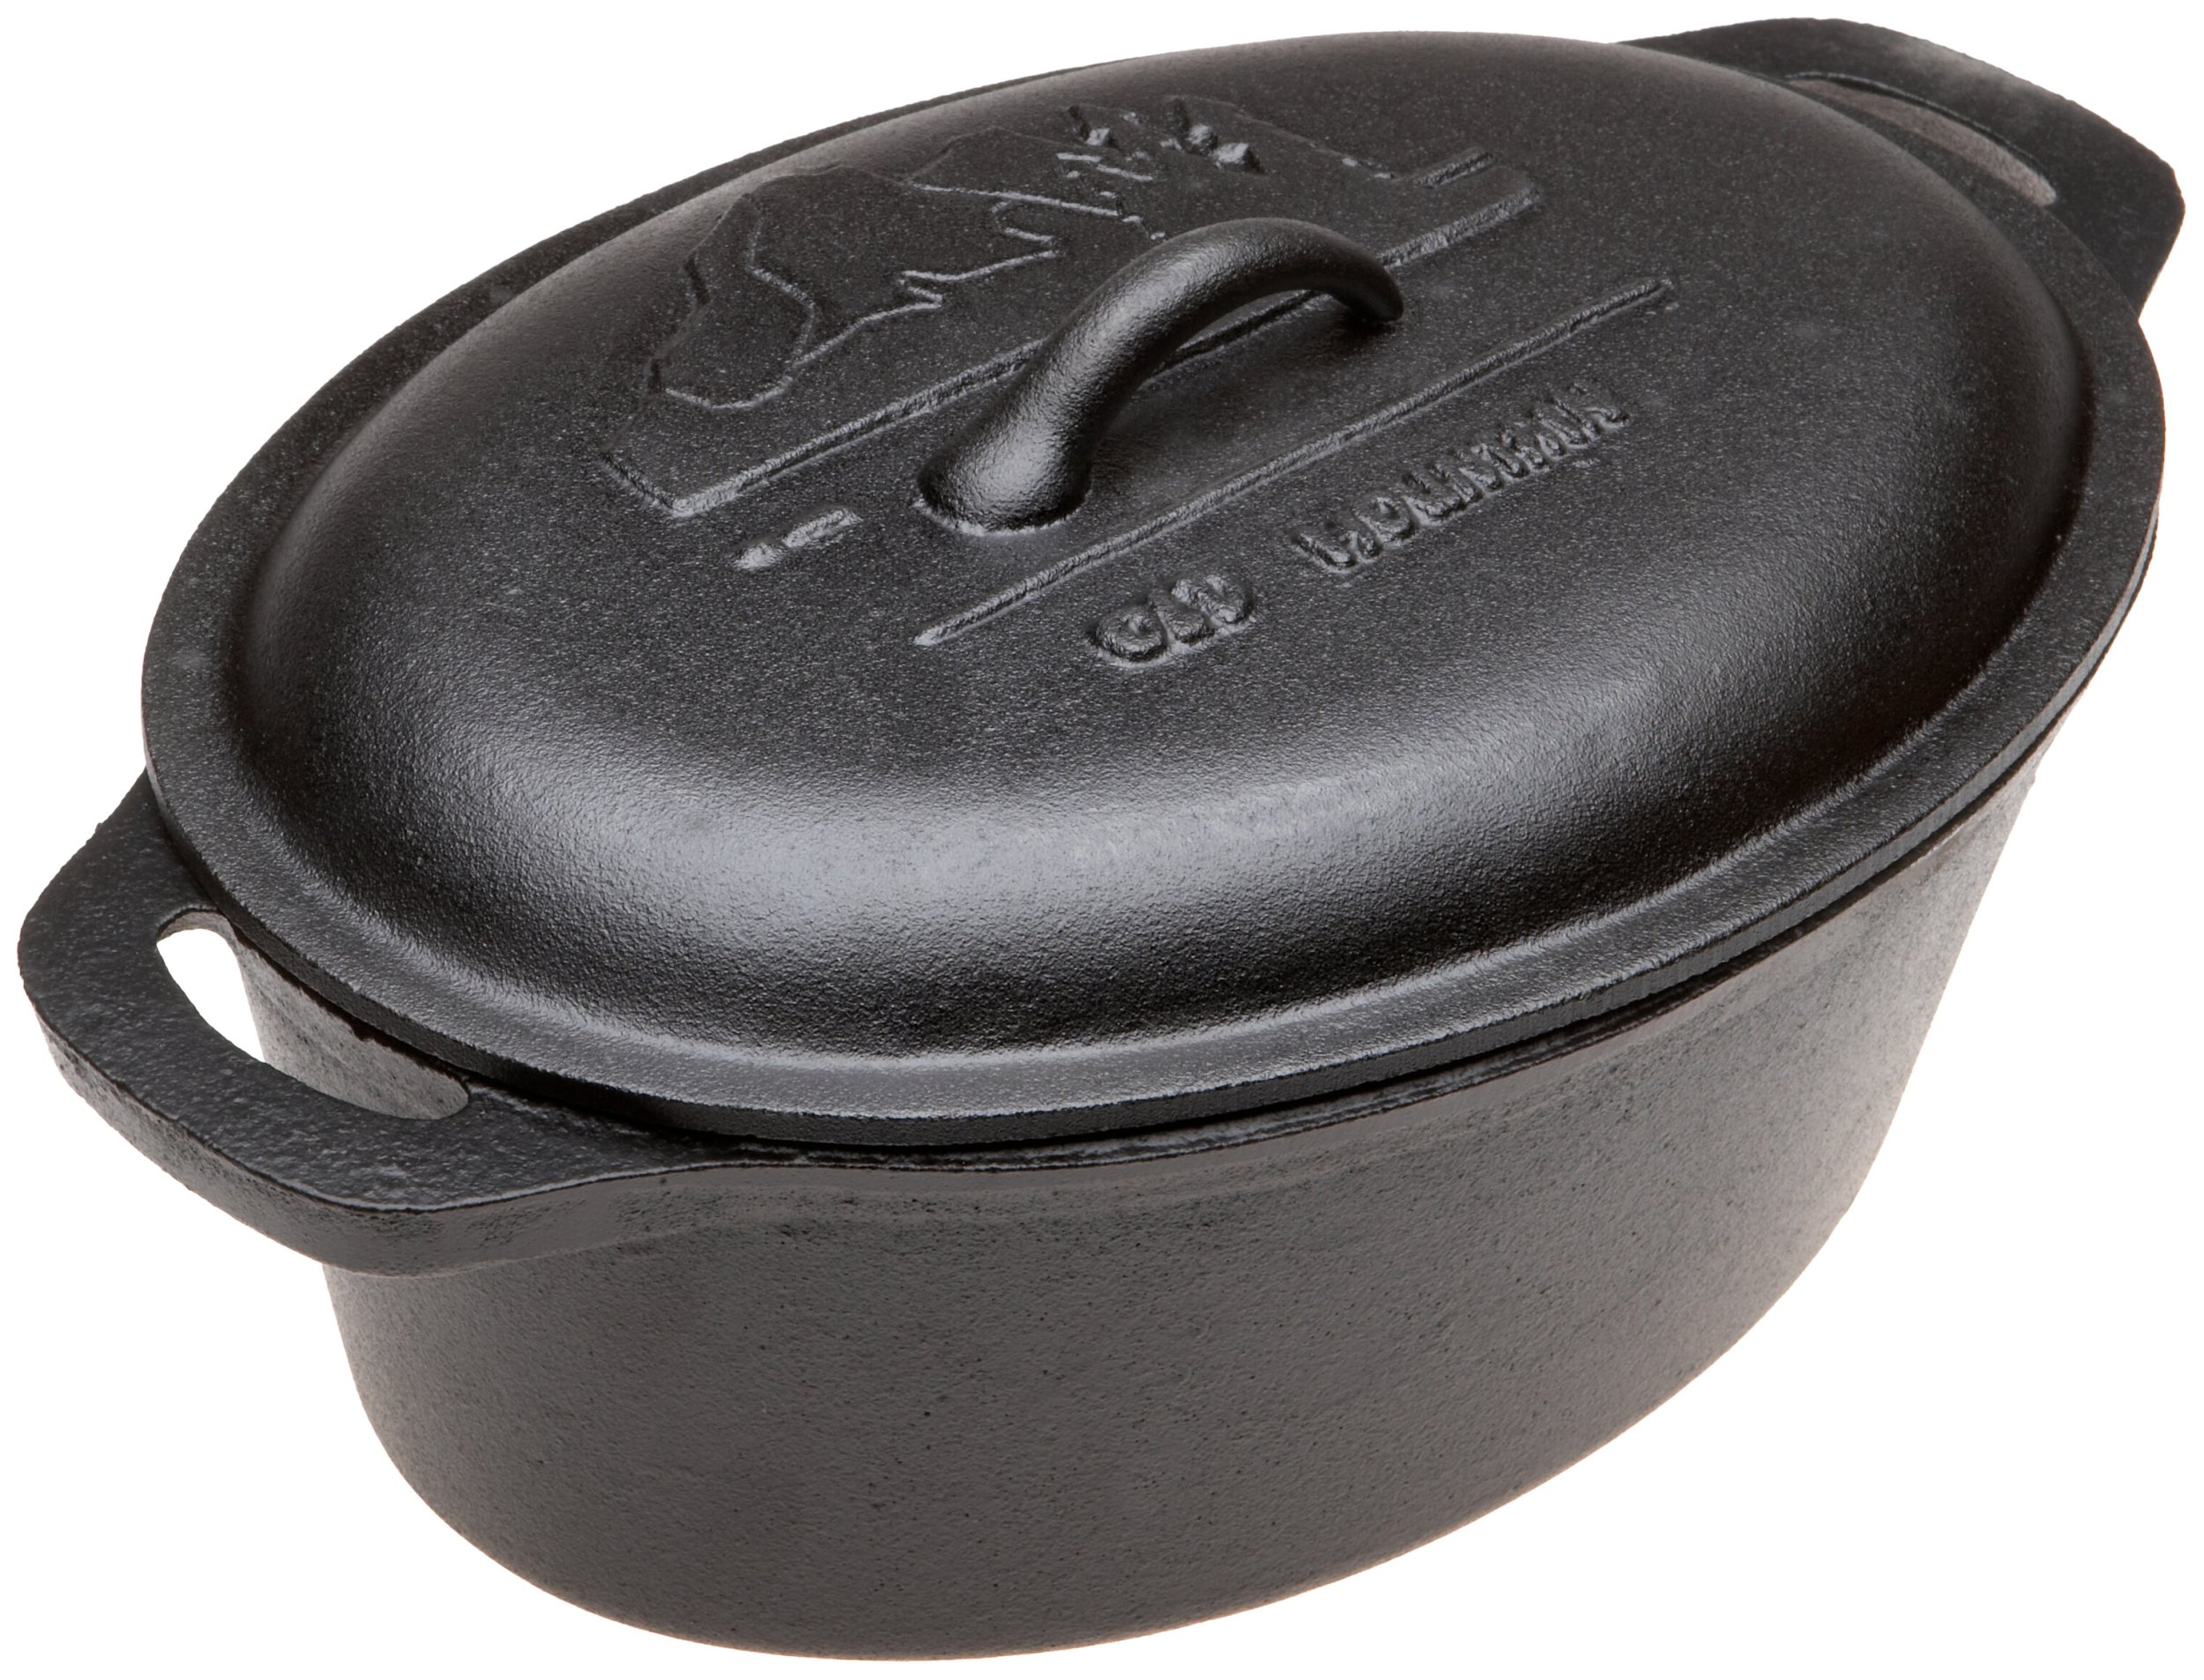 Old Mountain Pre Seasoned 10118 4 Quart Casserole with Dome Lid and Two End Handles